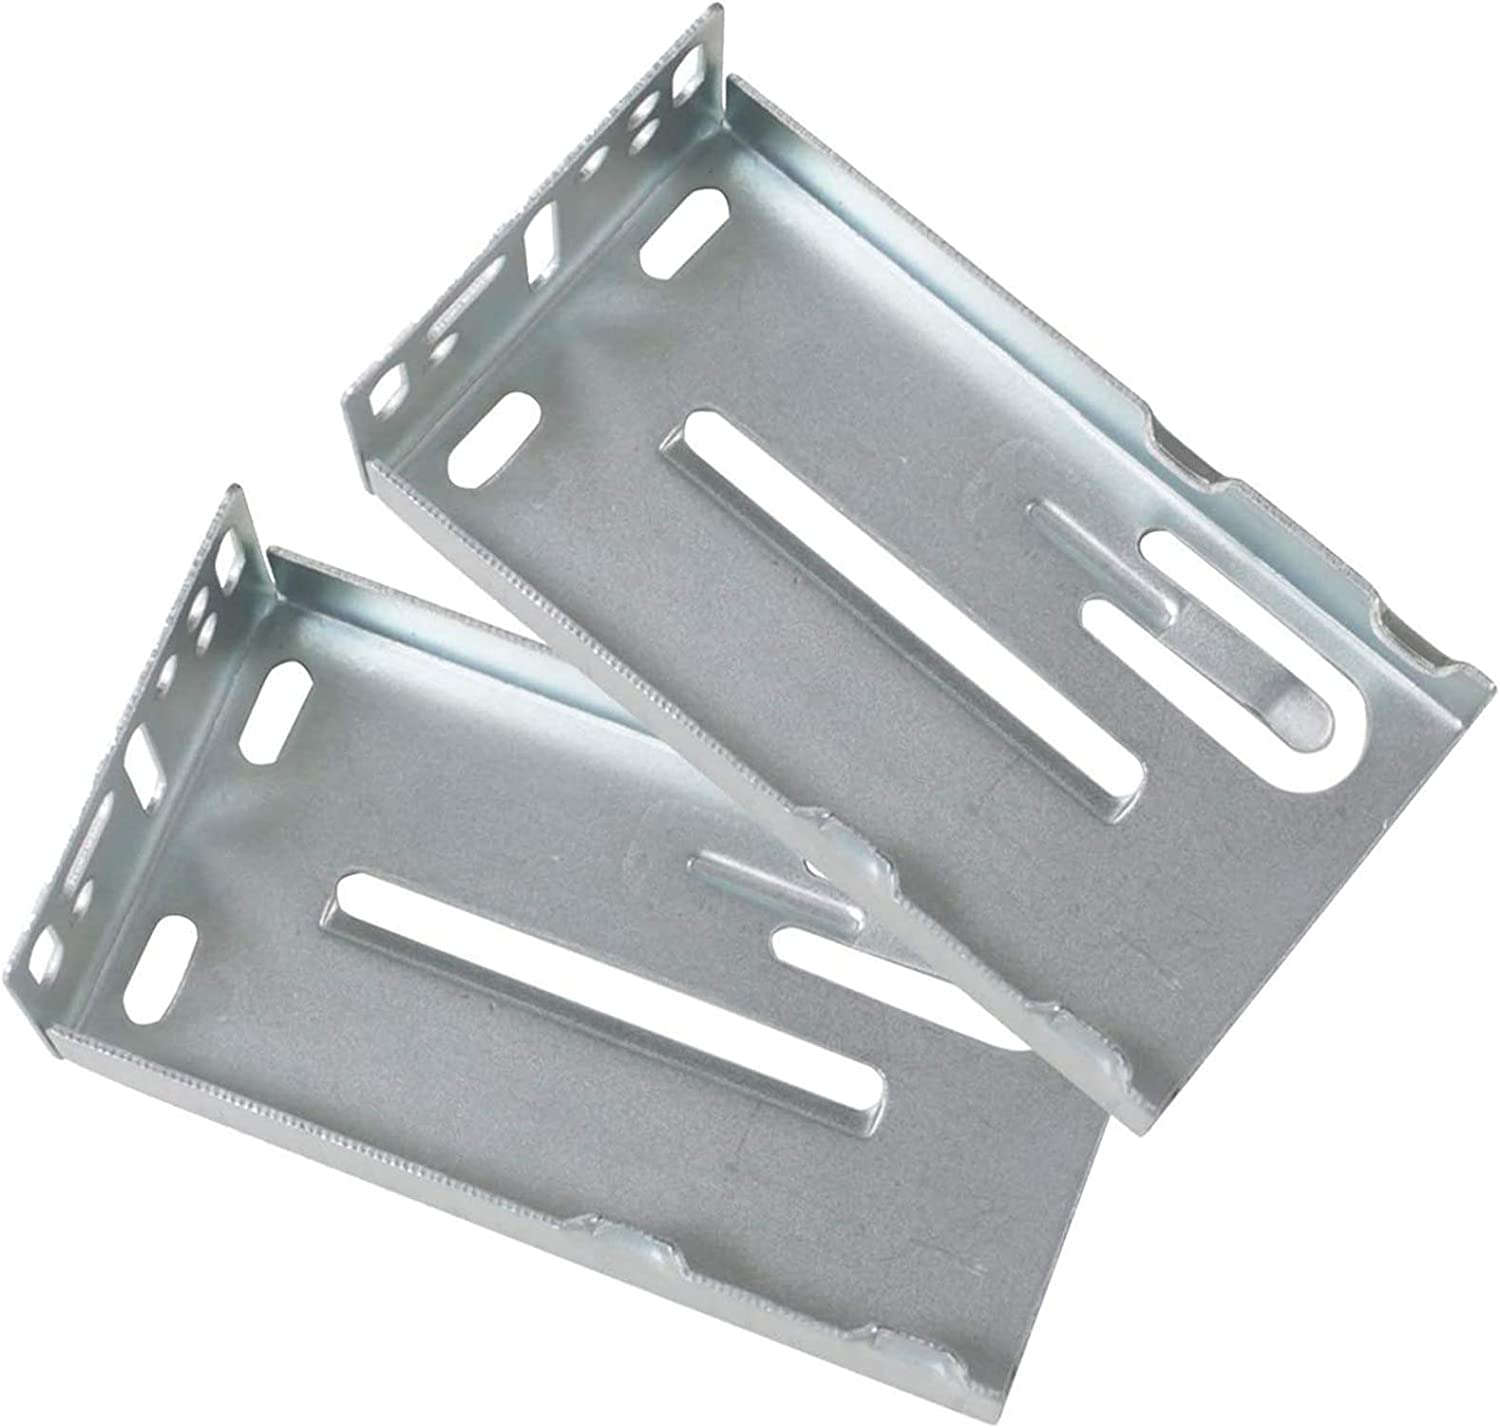 Gobrico Face Frame Rear Mounting Brackets for Drawer Slides Furniture Hardware 1Pair